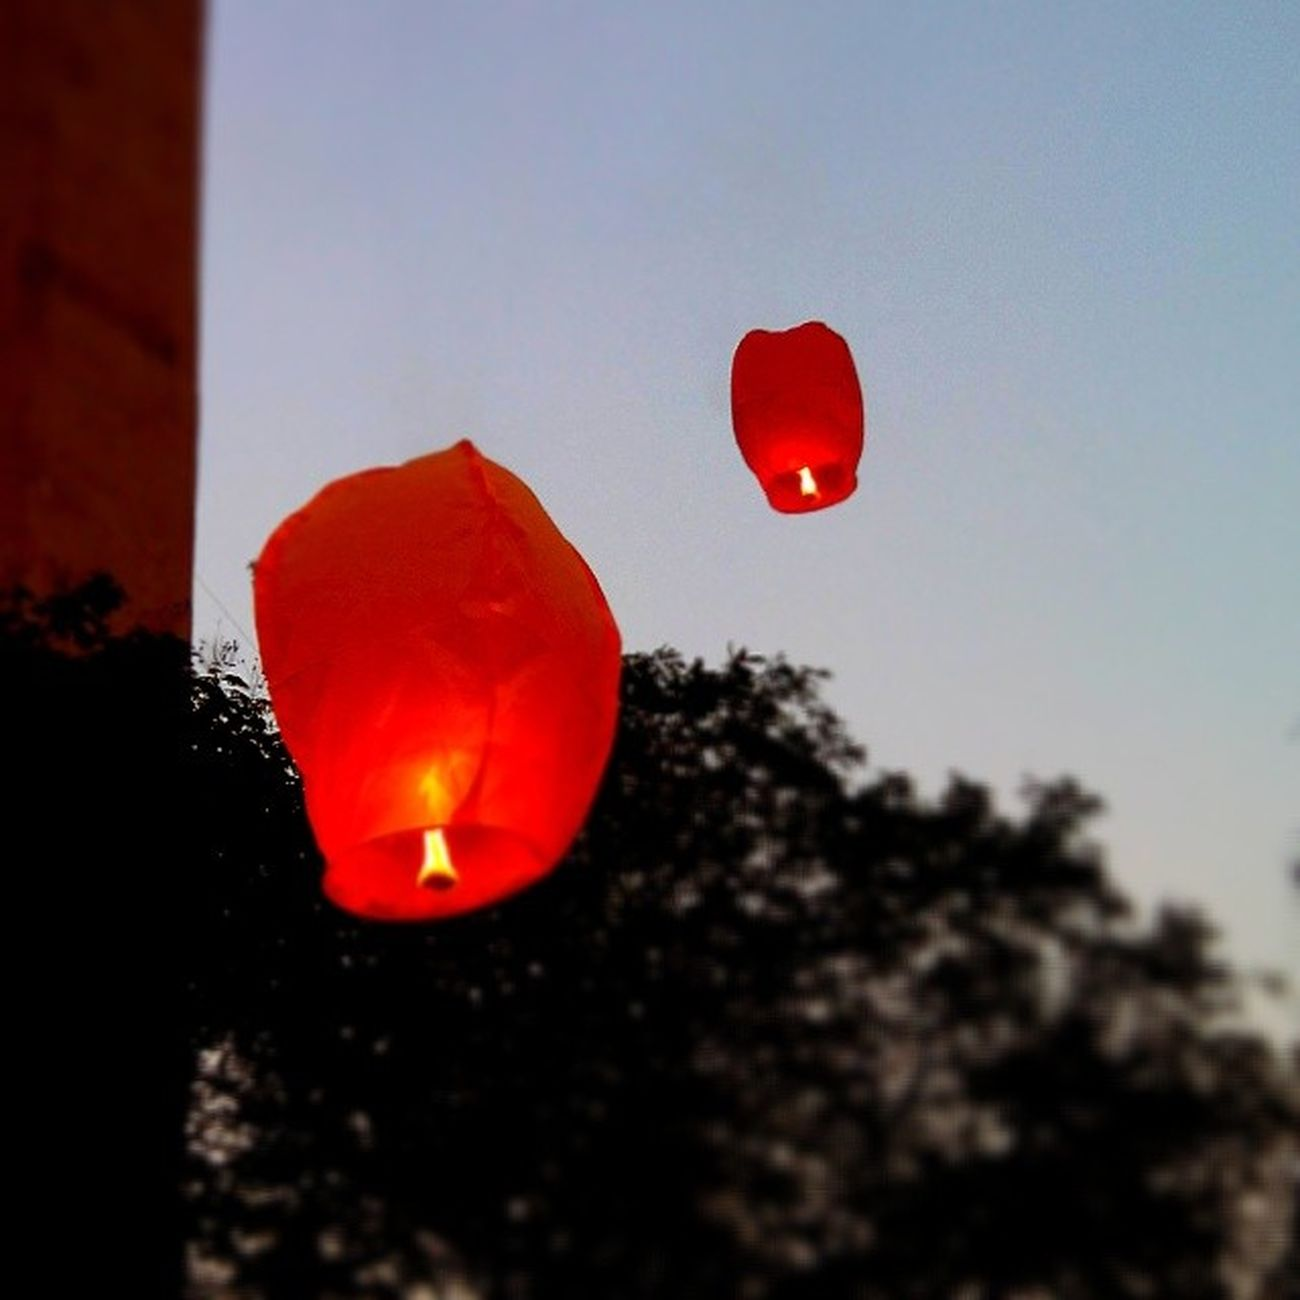 Hotair Balloons Udaan College fest Inauguration SPIT fly high myclick xolo hd instaedit Udaan14 picoftheday like l4l